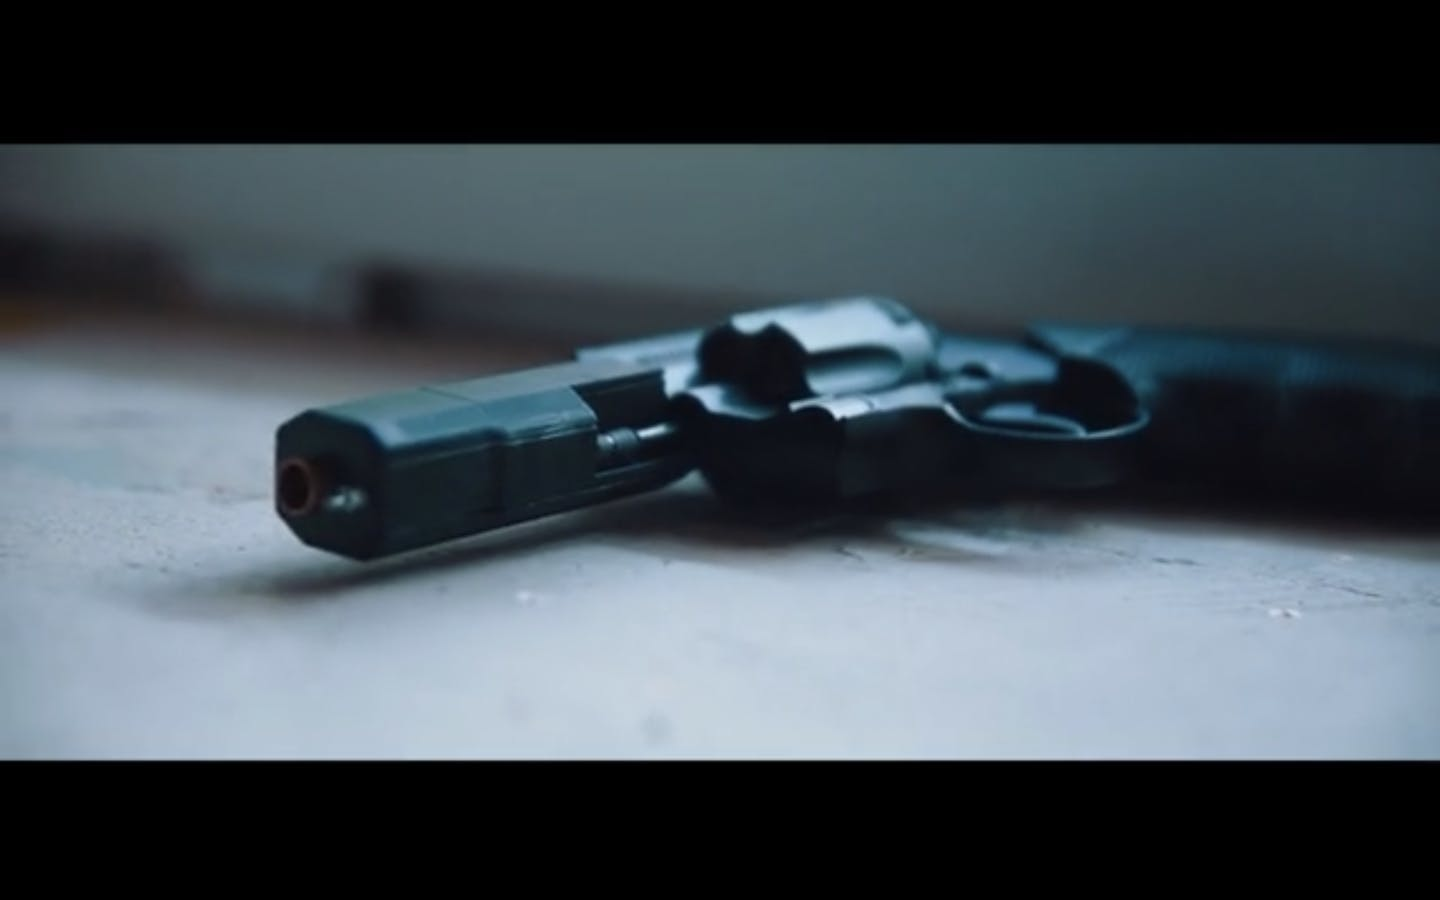 A Russian Roulette taser used for playing Perm.